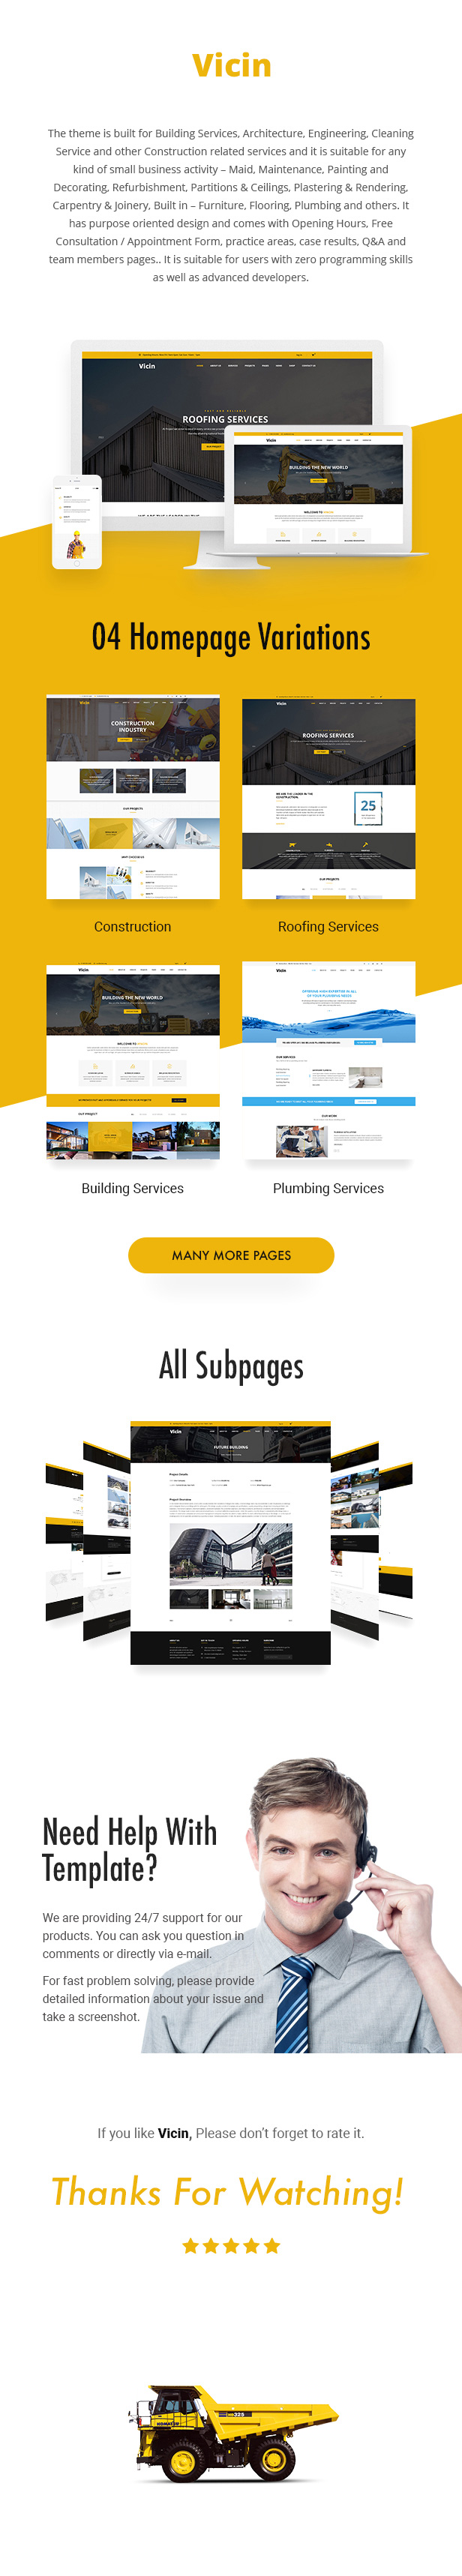 Vicin | Multipurpose Construction & Plumbing HTML Template - 2